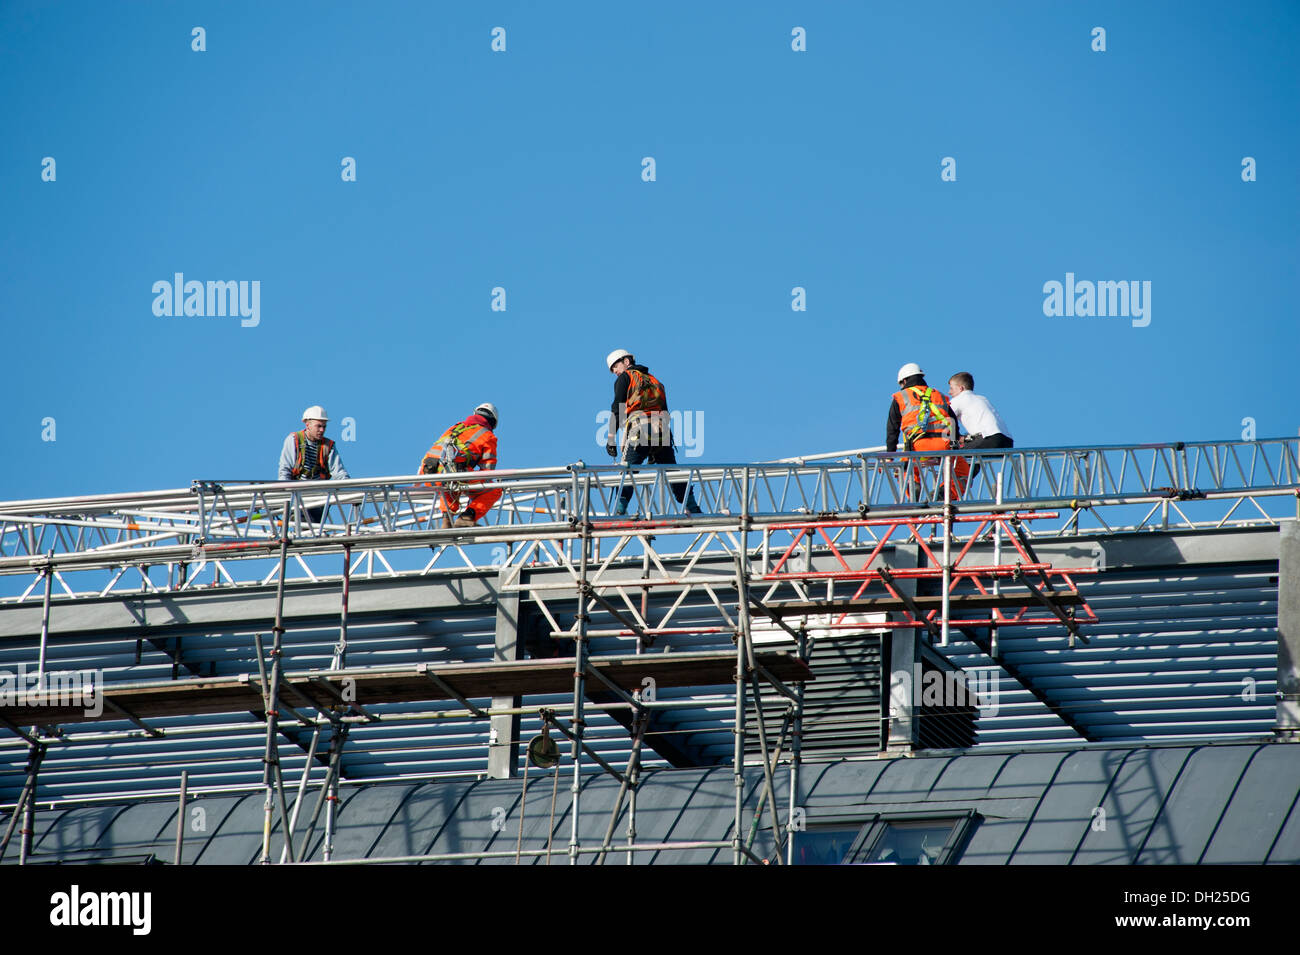 Roofers working on Scaffolding safety Harness H&S - Stock Image